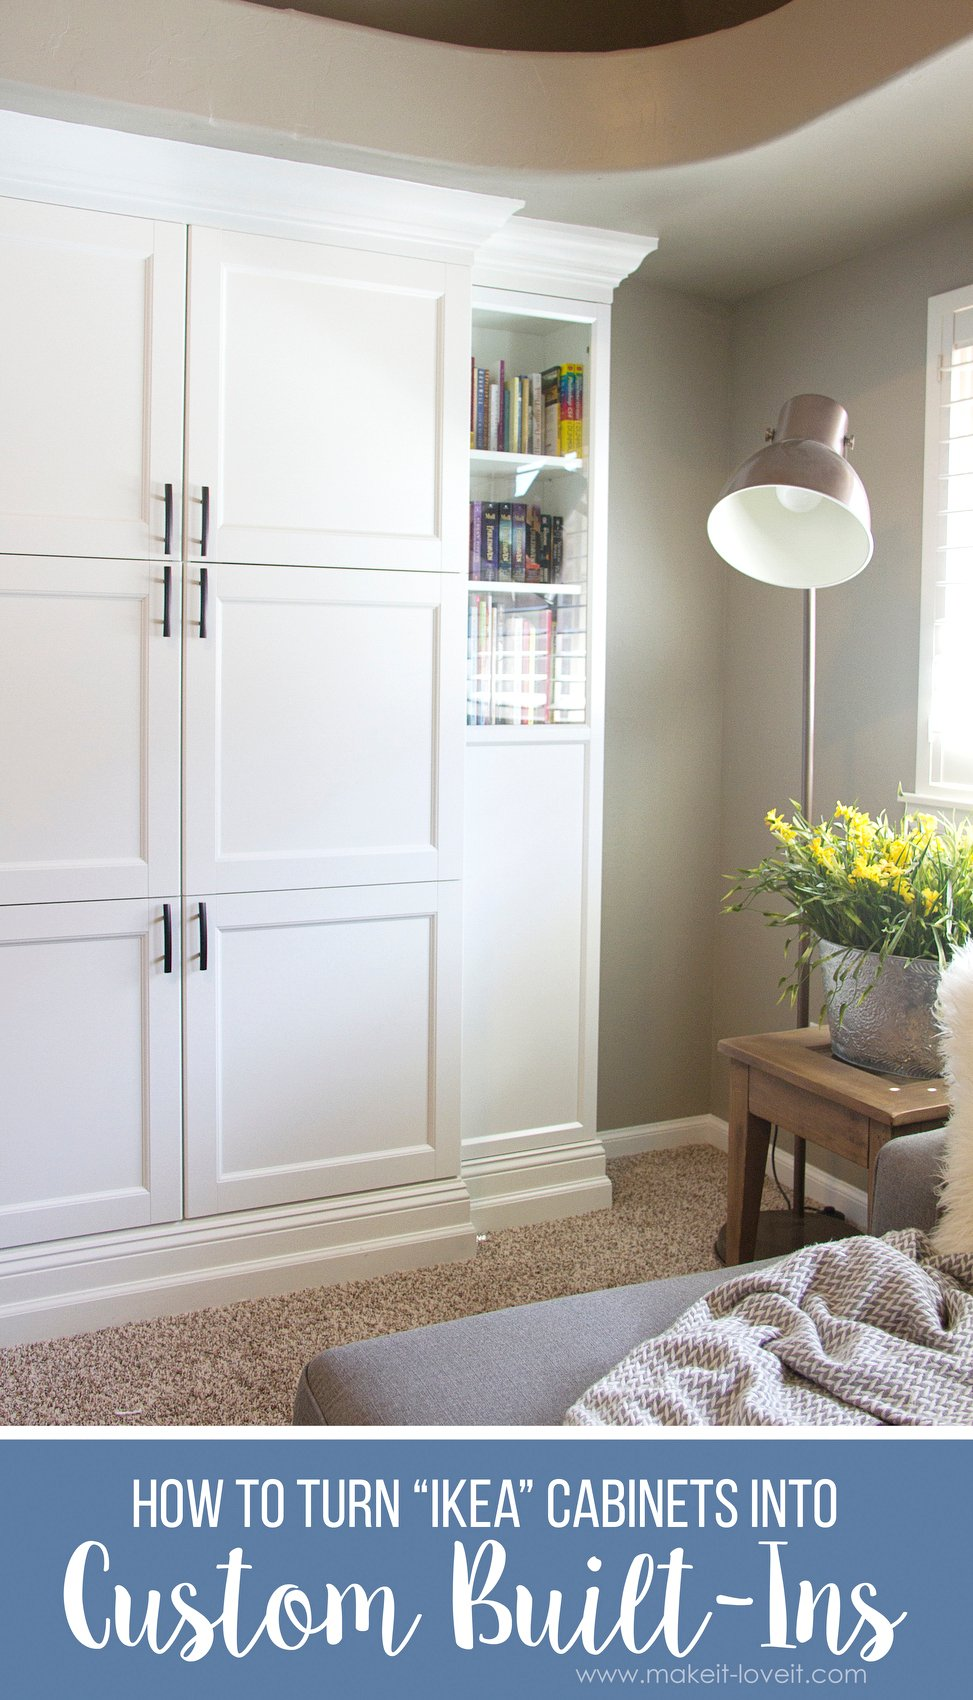 how to turn ikea bookshelves into custom built ins via wwwmakeit - Custom Bookshelves